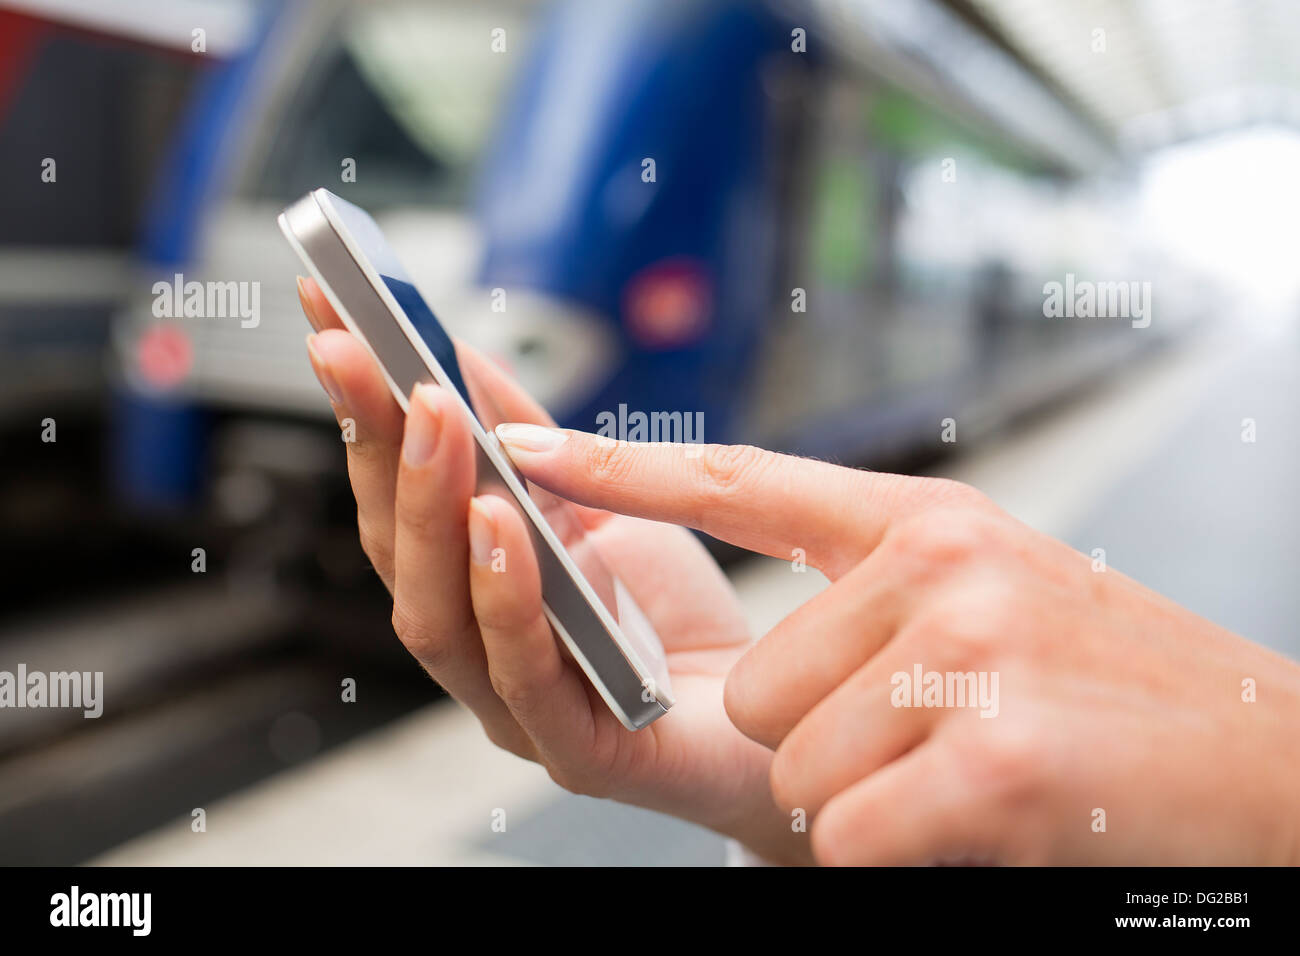 Female mobile phone tgv message sms - Stock Image